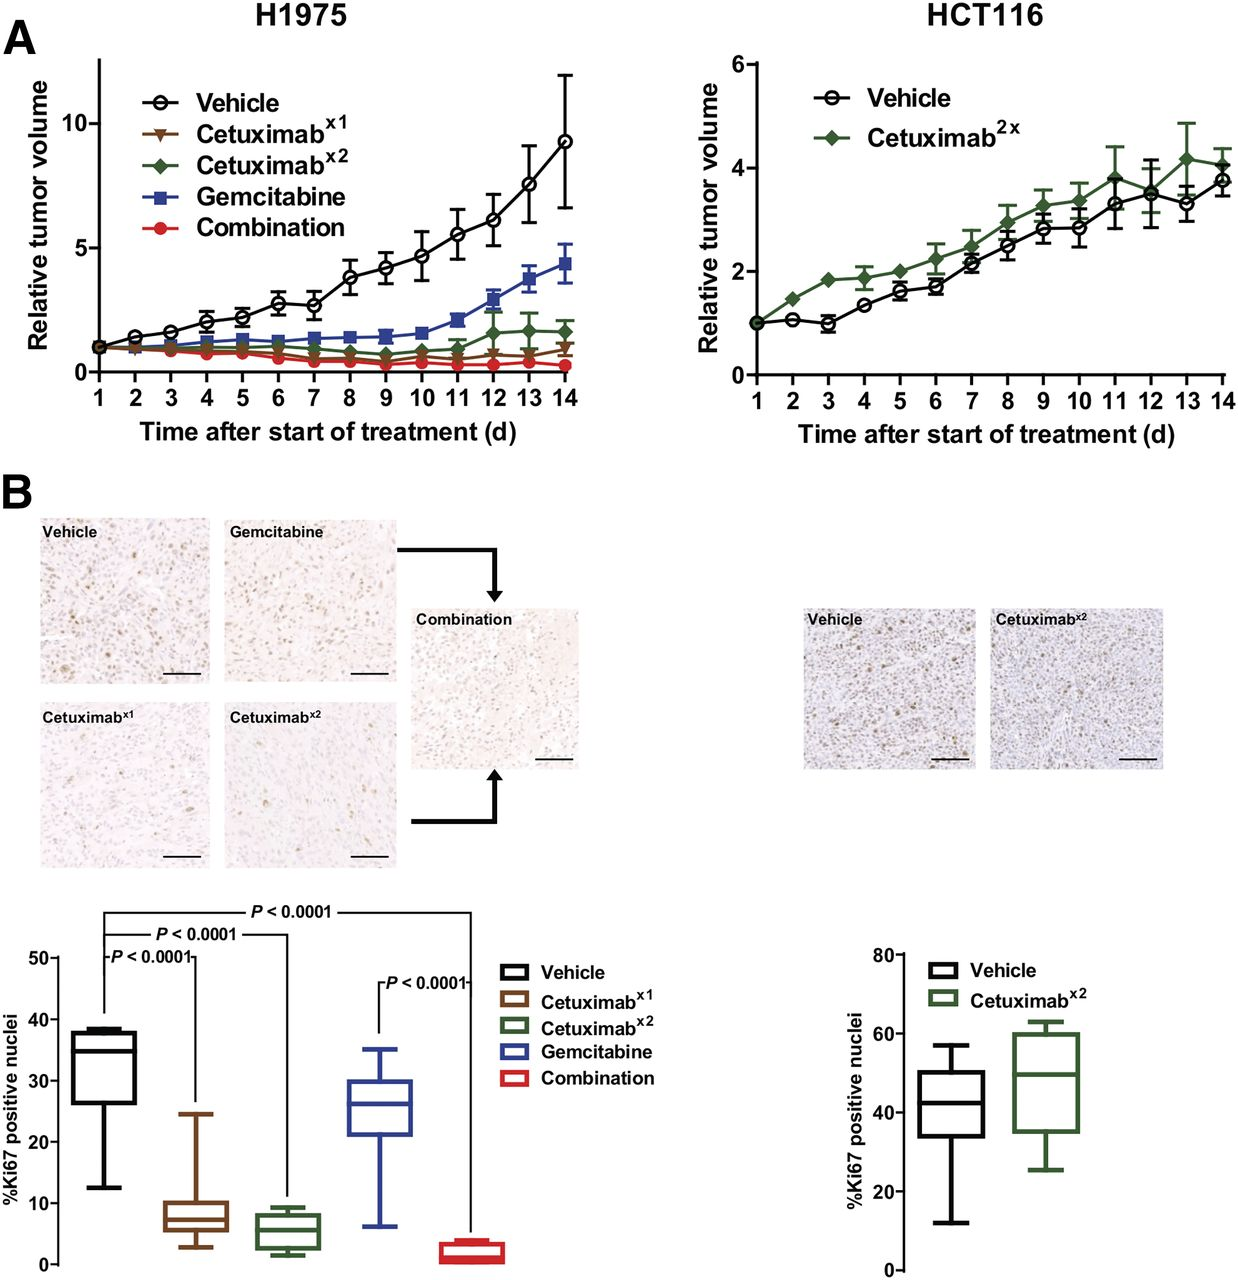 Depicting Changes in Tumor Biology in Response to Cetuximab